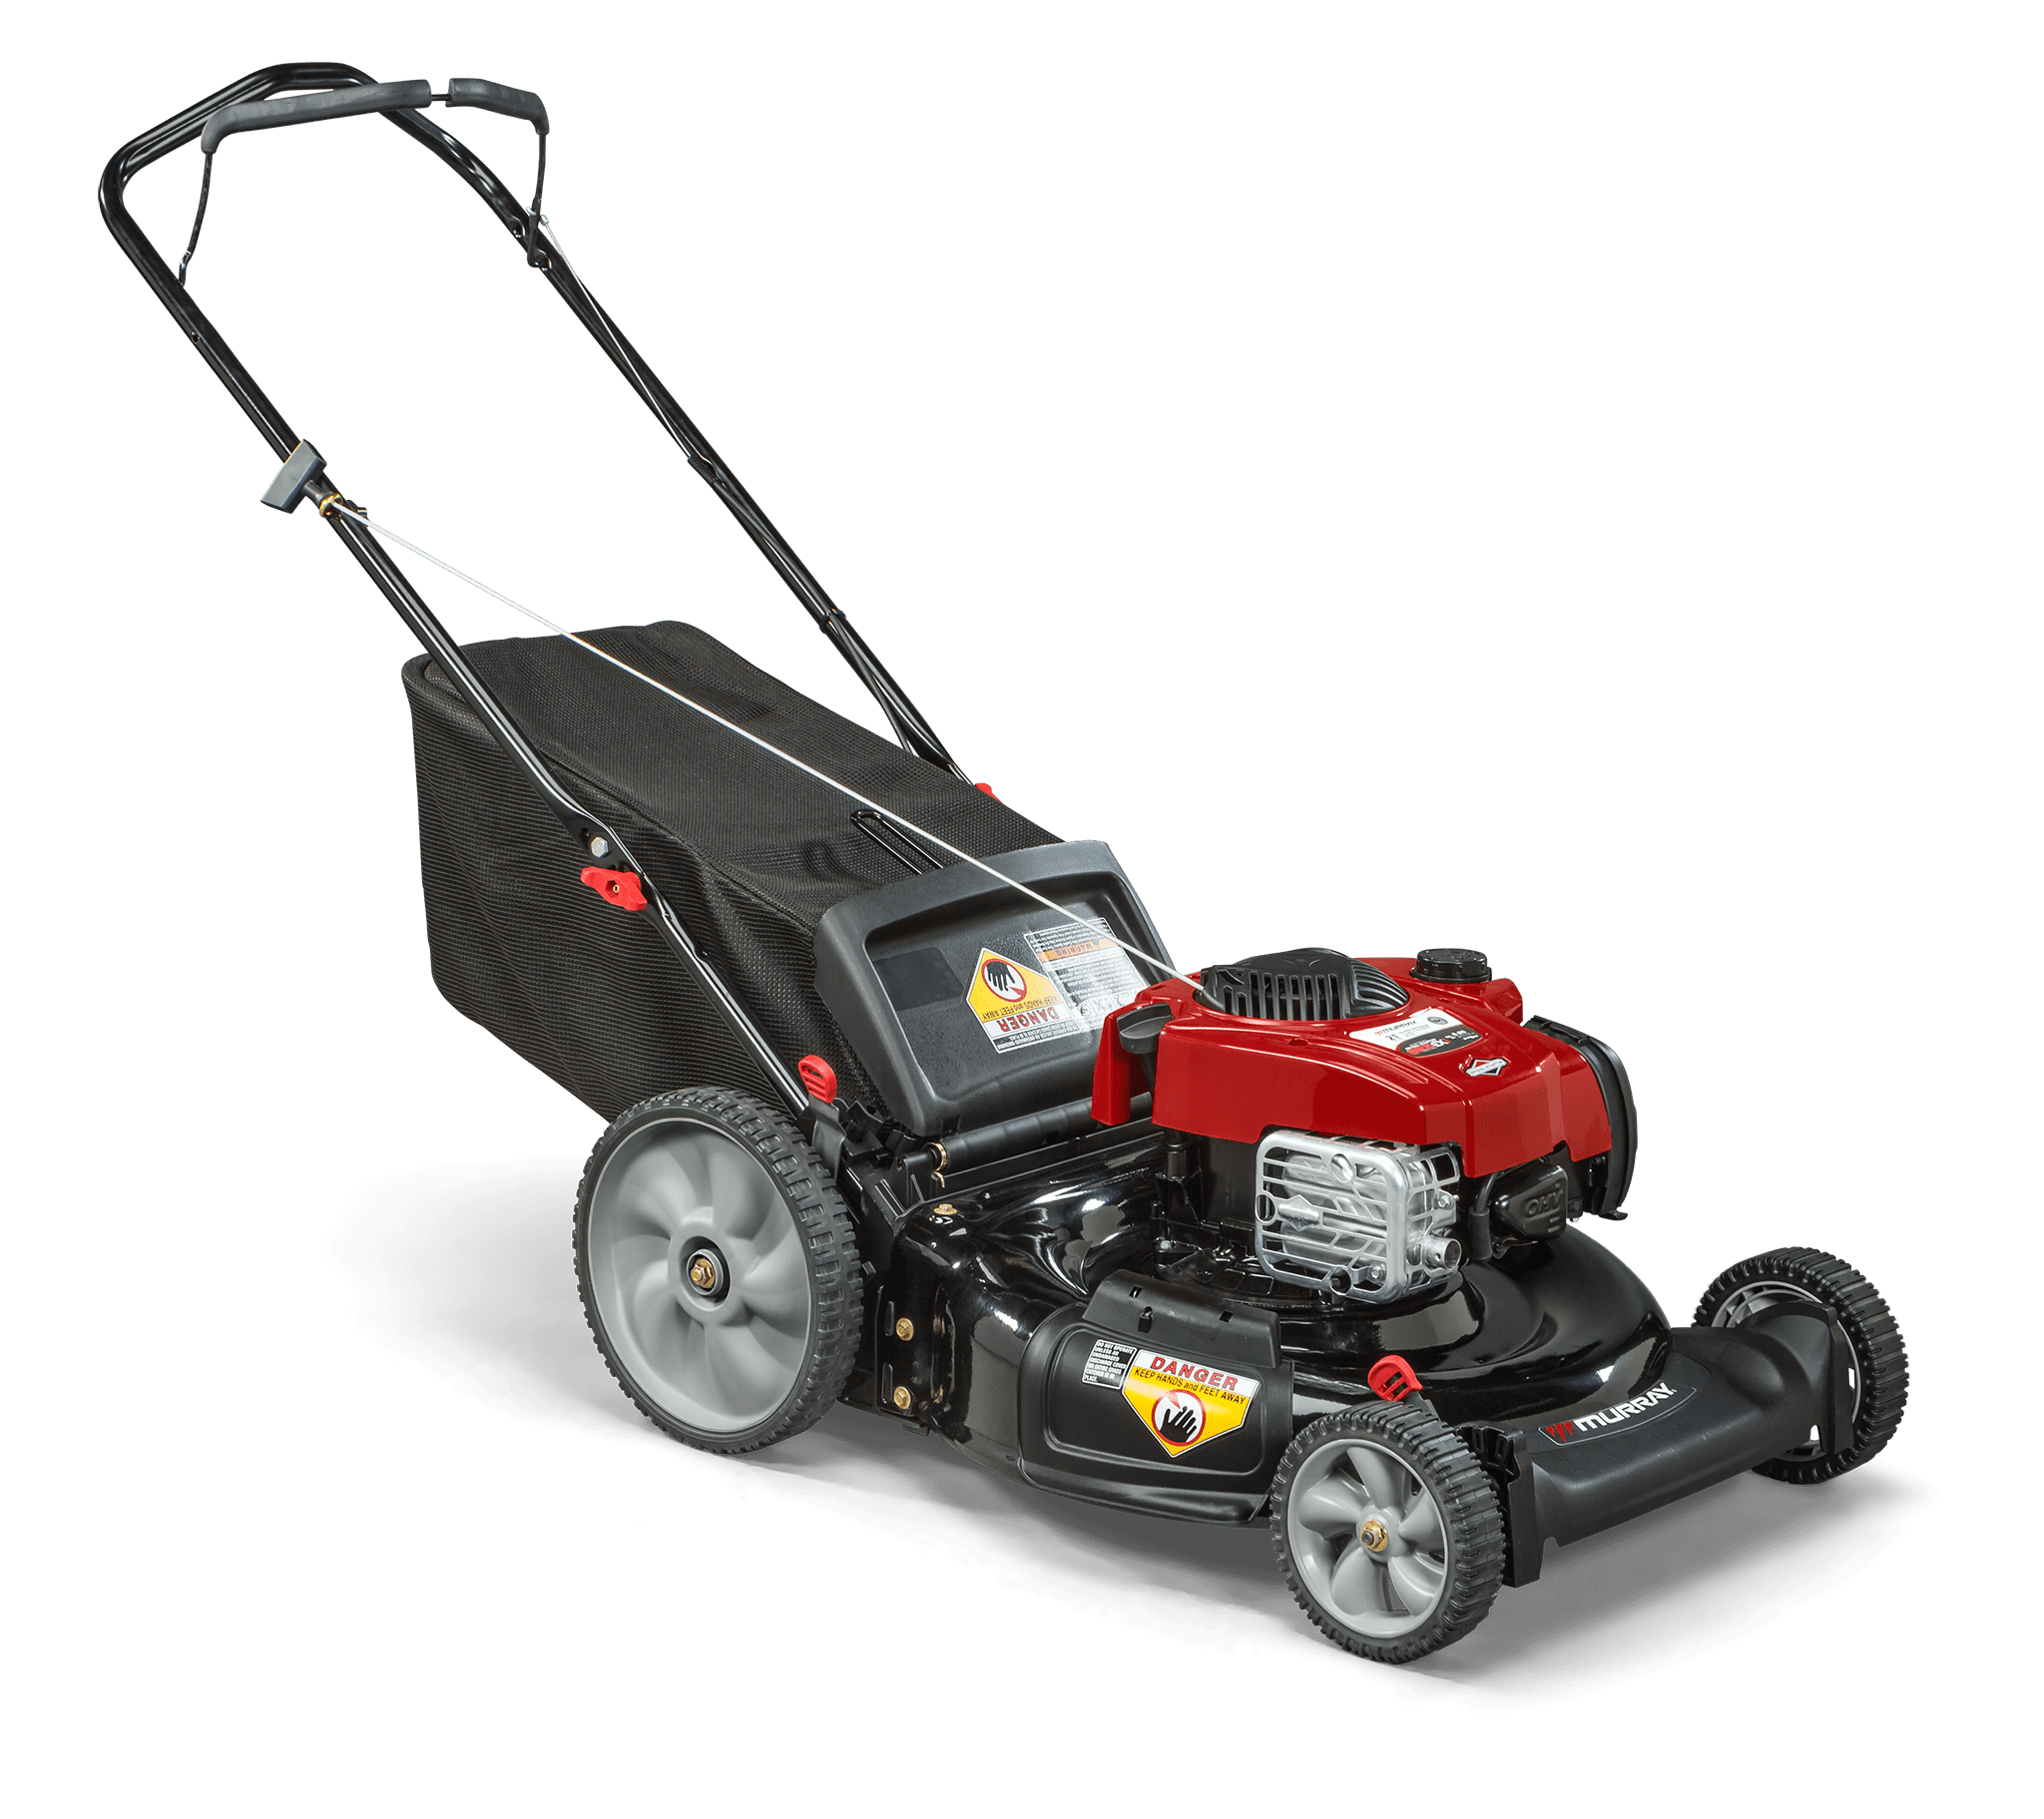 "Murray 21"" Gas Push Lawn Mower with Briggs and Stratton Engine, Side Discharge, Mulching, Rear Bag, Rear High... by MTD"